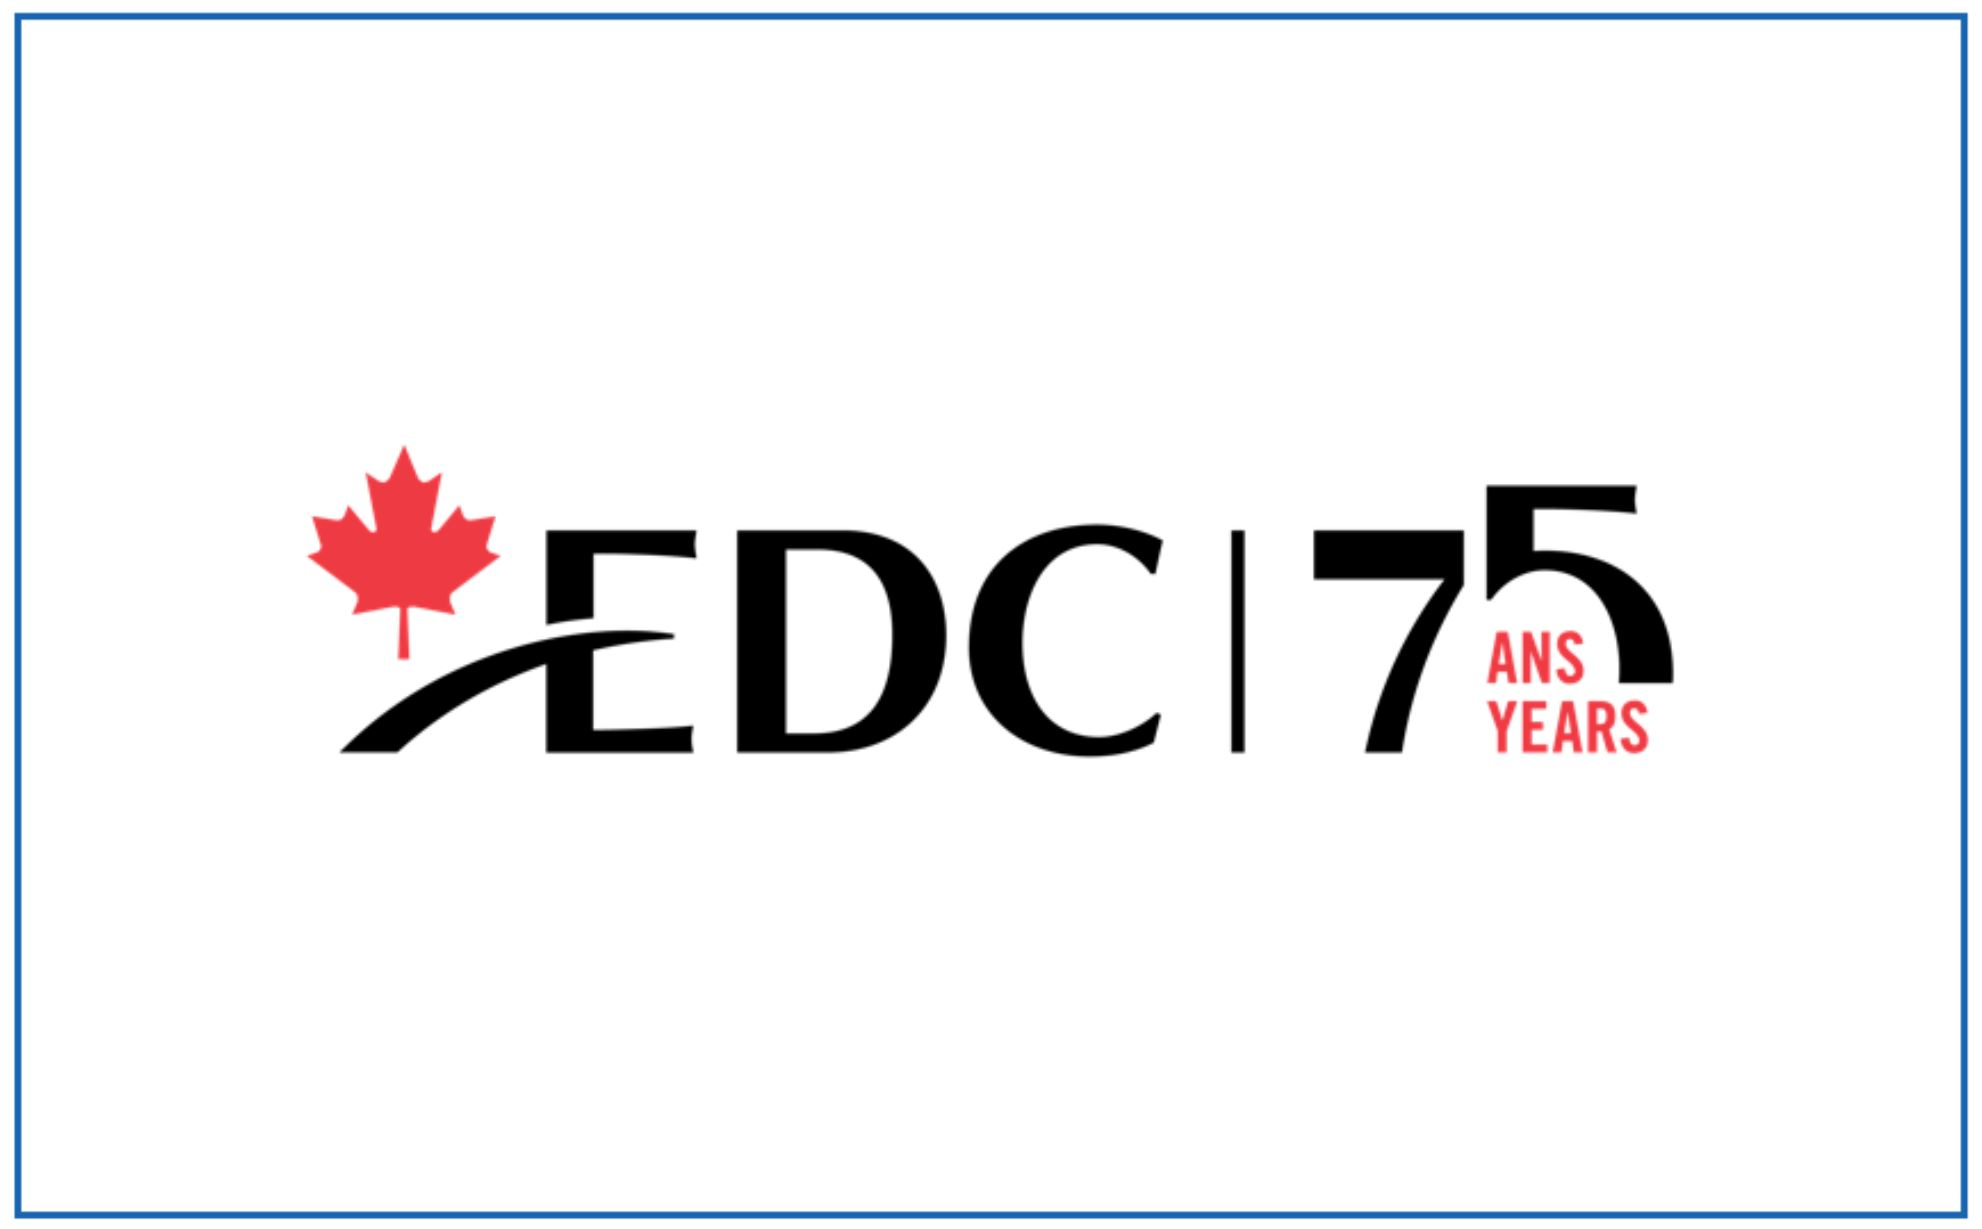 EDC provides relief for Canadian businesses during COVID-19 crisis